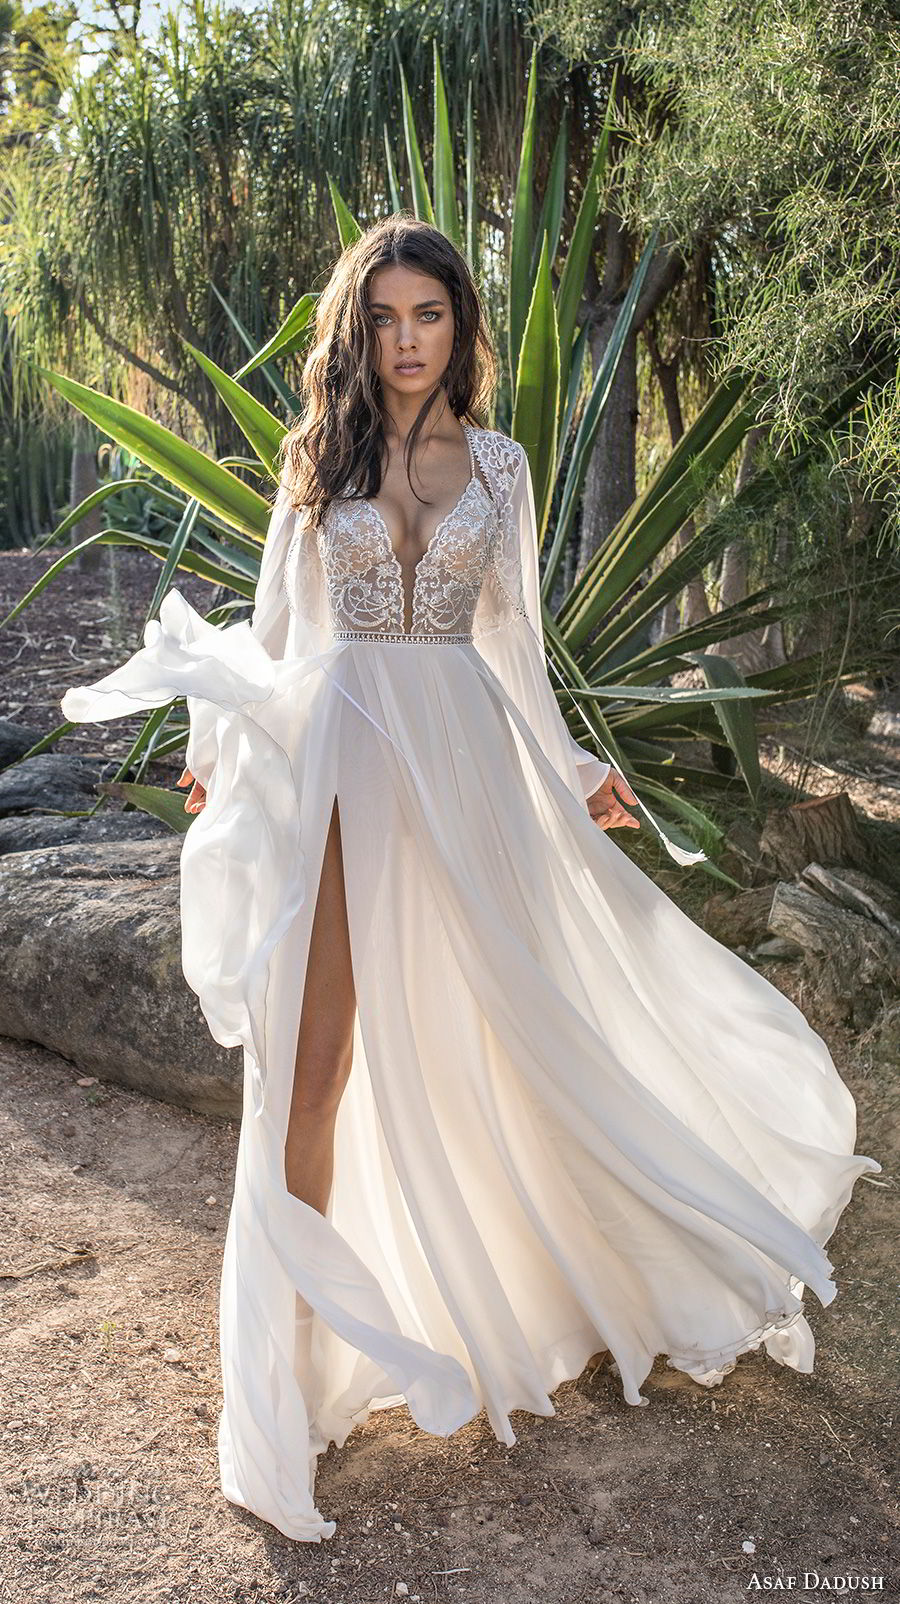 asaf dadush 2018 bridal long sleeves deep plunging sweetheart neckline heavily embellished bodice high slit skirt soft a line wedding dress covered lace back sweep train (4) mv